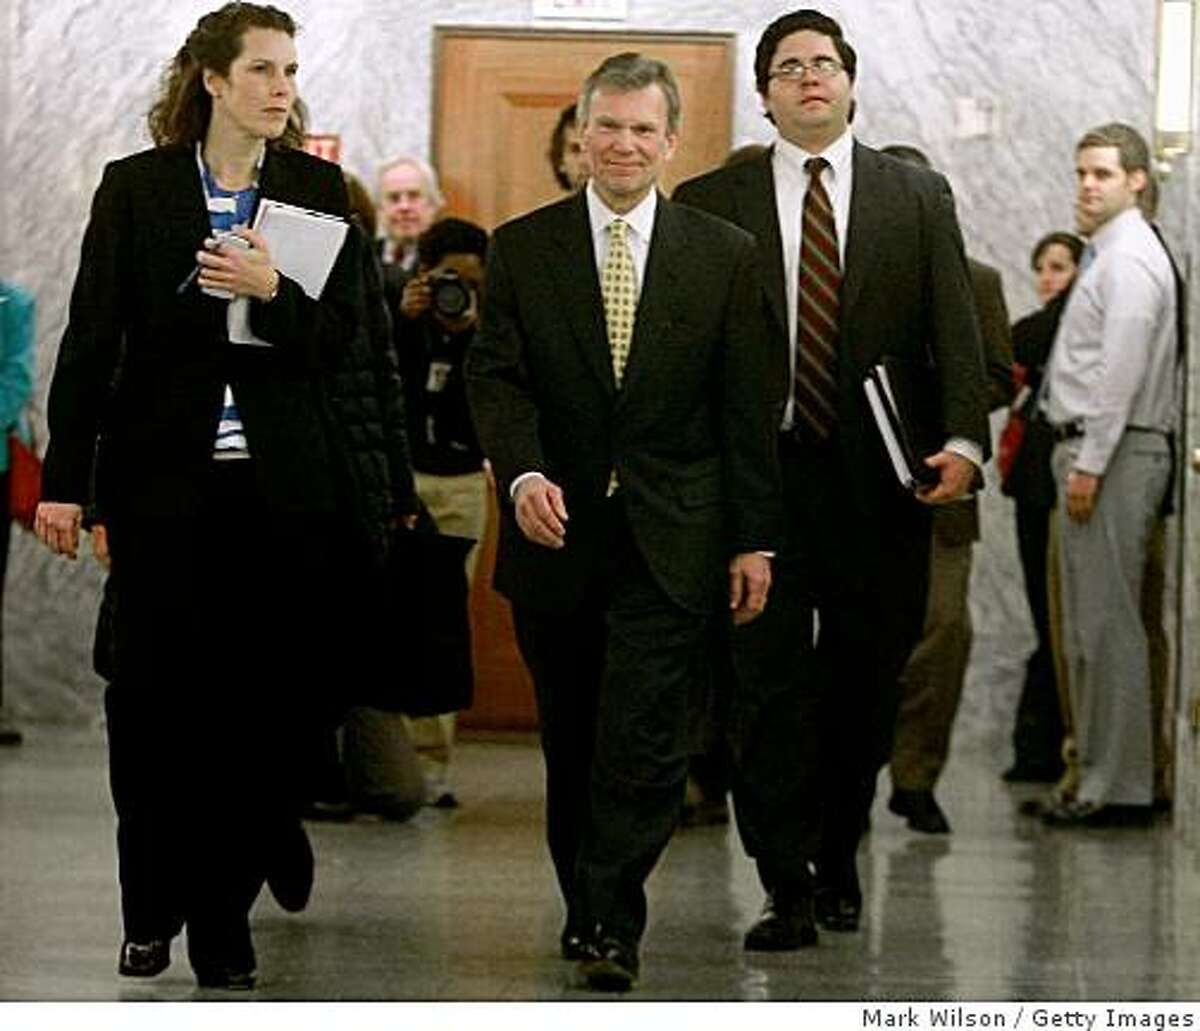 WASHINGTON - FEBRUARY 02: Former Senator Thomas Daschle (C) (D-SD) arrives for a closed door meeting with Members of the Senate Finance Committee on Capitol Hill on February 2, 2009 in Washington, DC. Daschle, who was nominated by President Brack Obama to be secretary of Health and Human Services secretary, was questioned about $128,000 in errors on his taxes. (Photo by Mark Wilson/Getty Images)